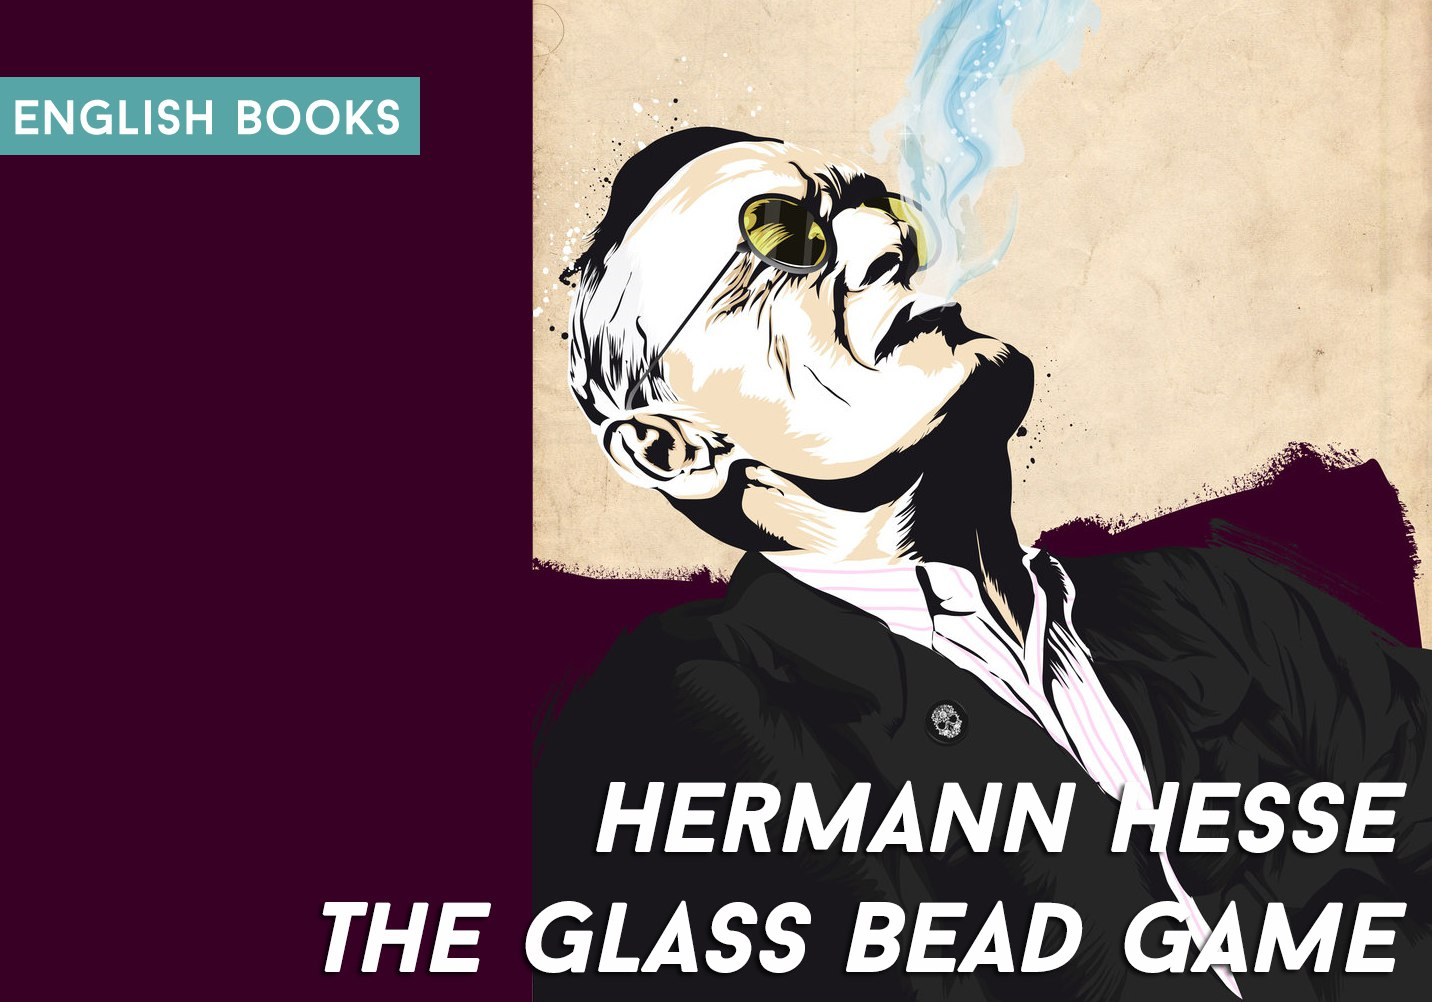 Hermann Hesse — The Glass Bead Game